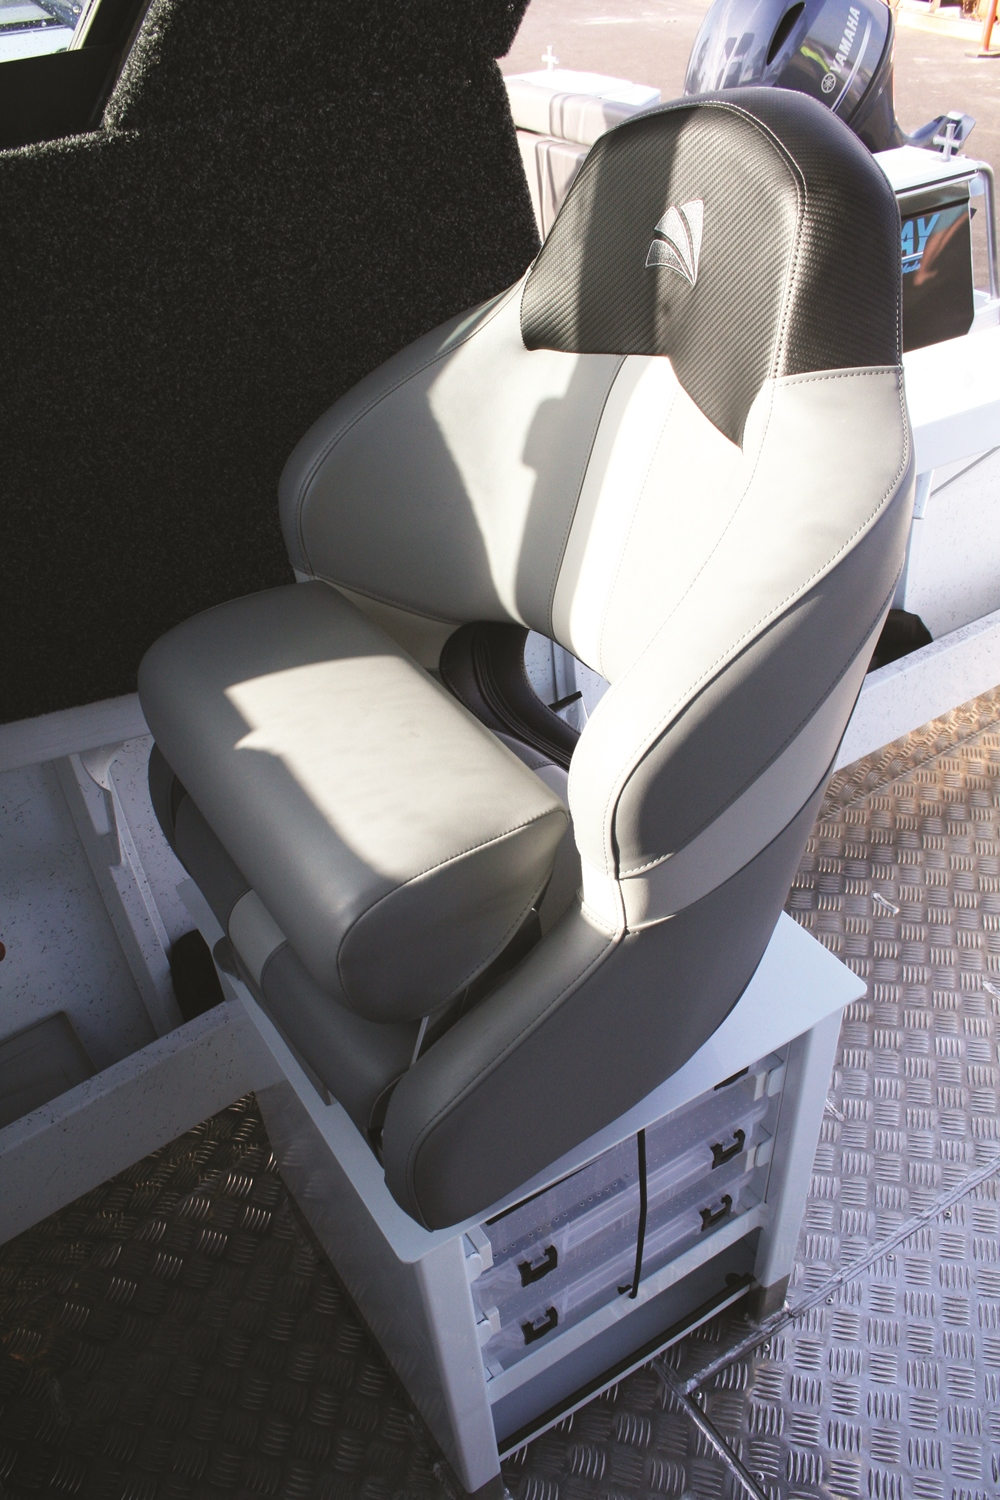 Quite possibly the comfiest seat on the water, with the added bonus of in-built Plano tackle storage.